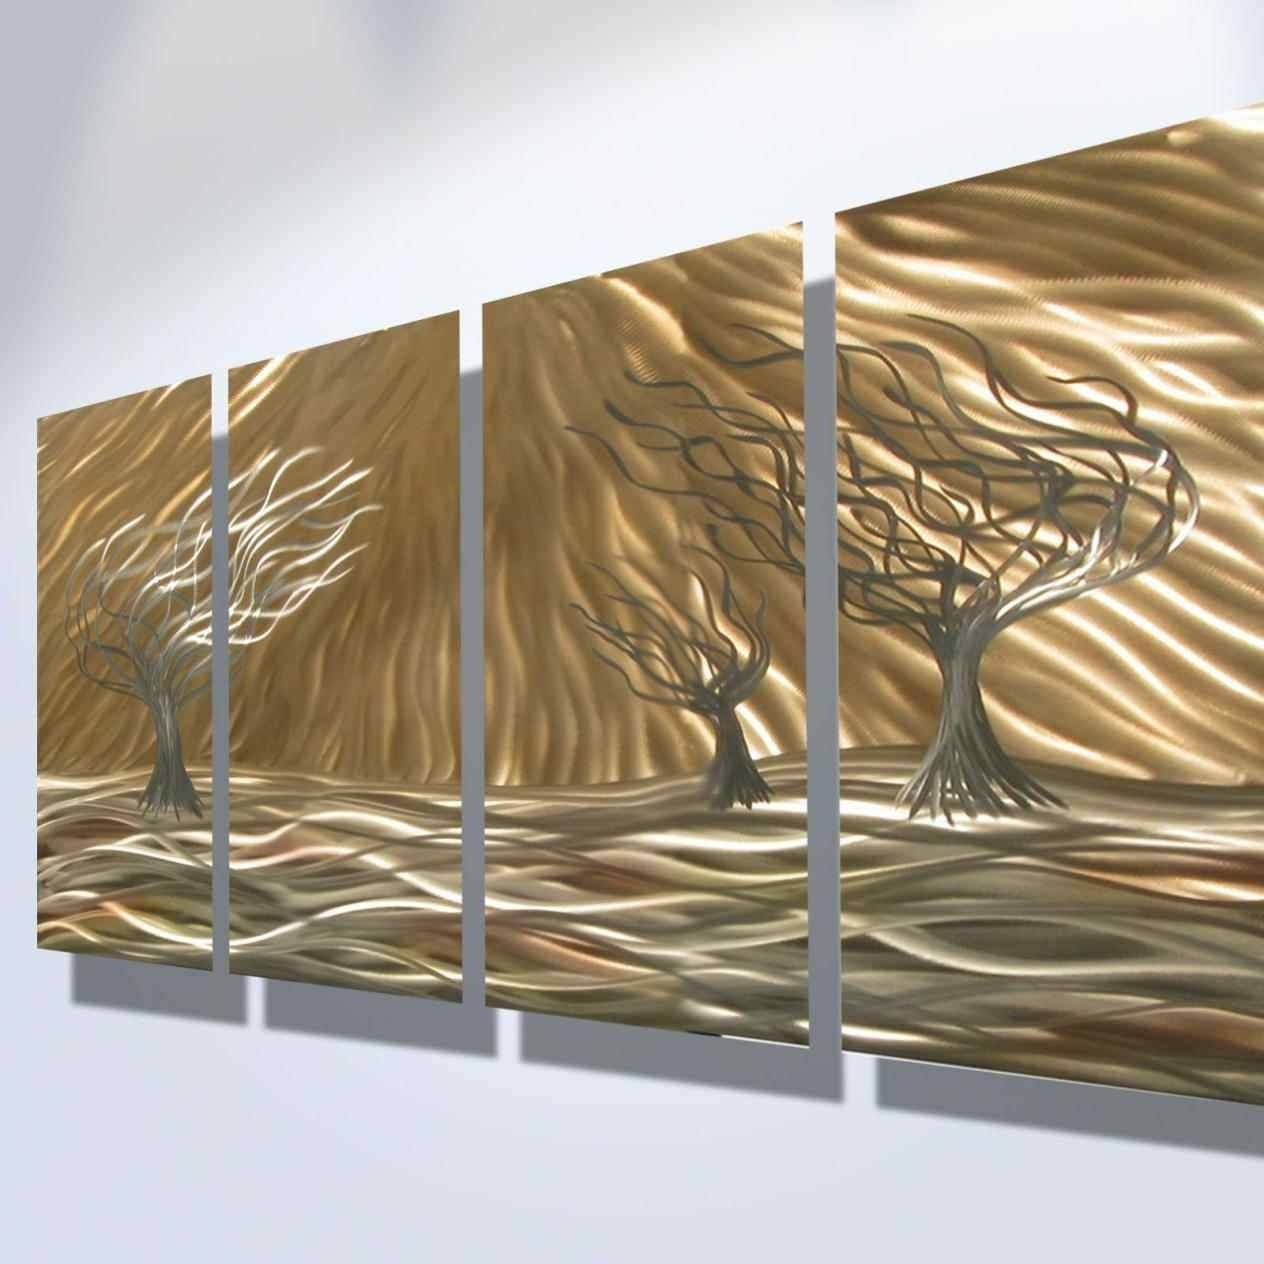 Unusual Metal Wall Art | Home Interior Decor Regarding Most Recent Unusual Metal Wall Art (View 14 of 20)